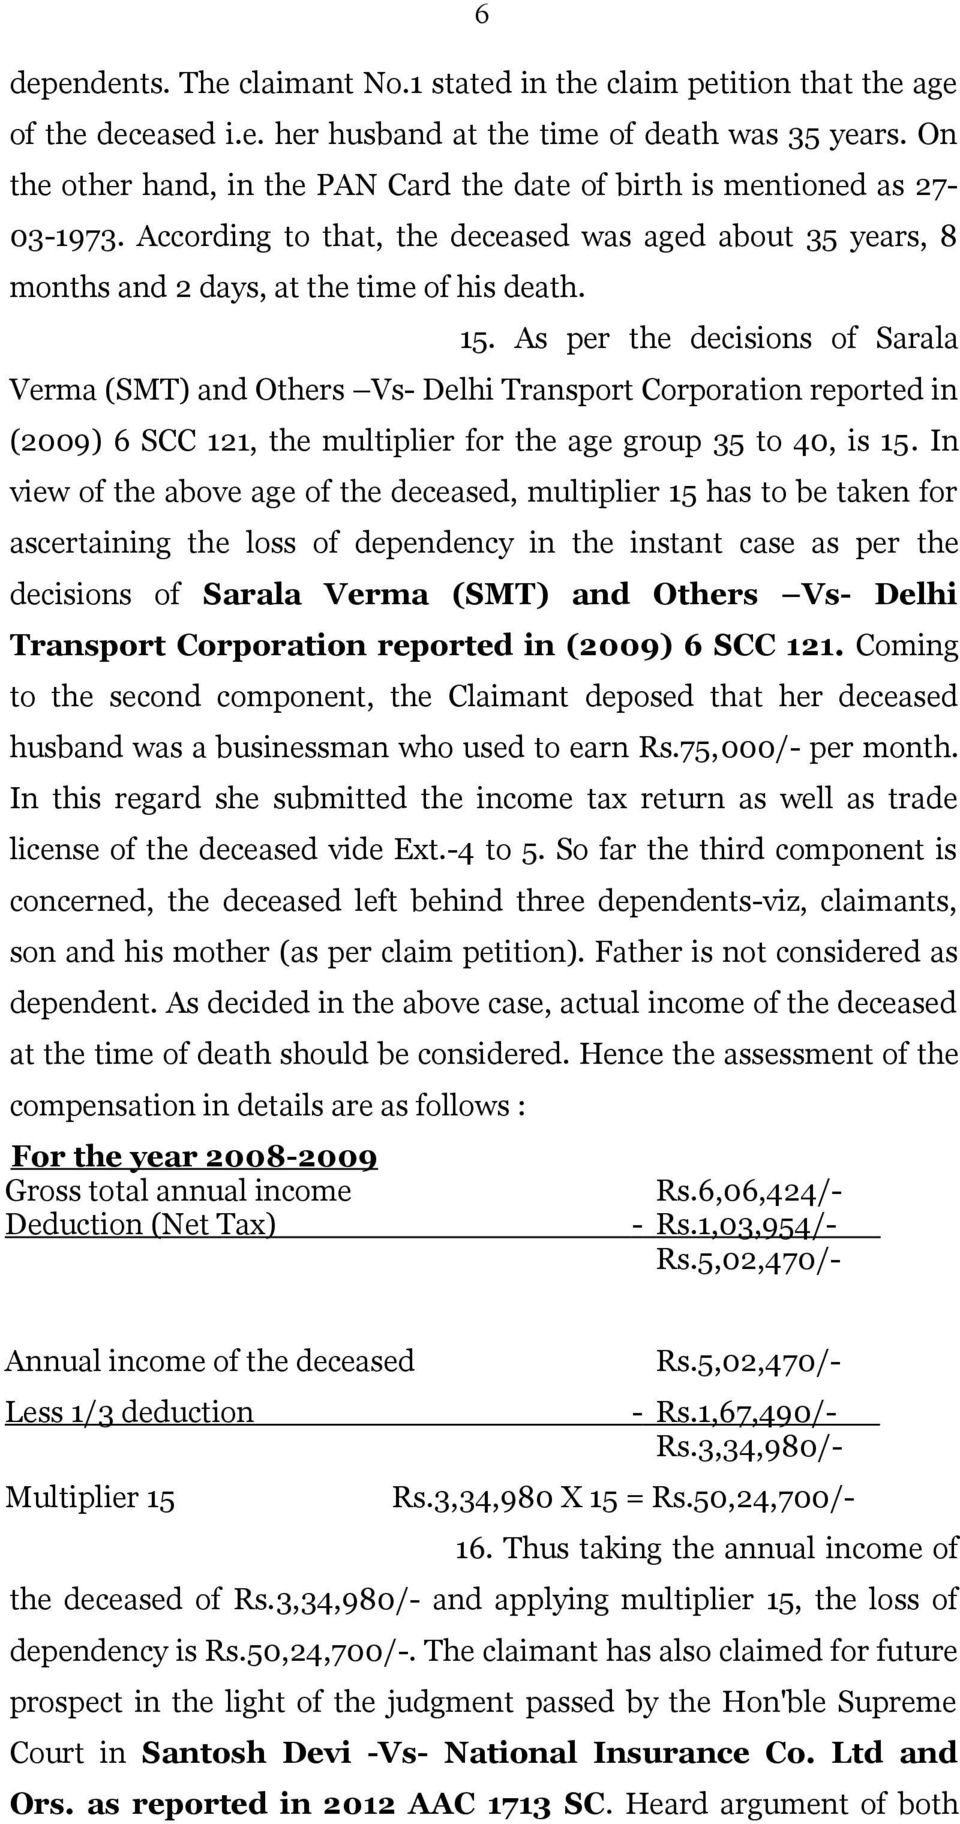 As per the decisions of Sarala Verma (SMT) and Others Vs- Delhi Transport Corporation reported in (2009) 6 SCC 121, the multiplier for the age group 35 to 40, is 15.